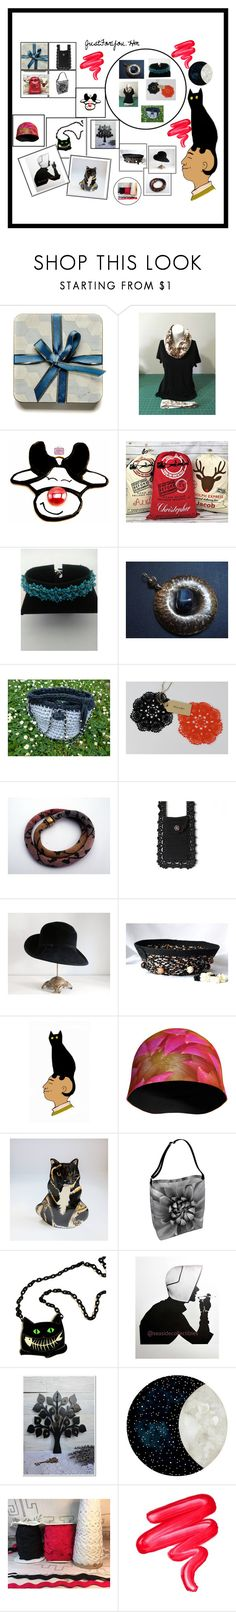 """Gifts by Etsy"" by justforyouhm ❤ liked on Polyvore featuring Helen Kaminski and Lime Crime"